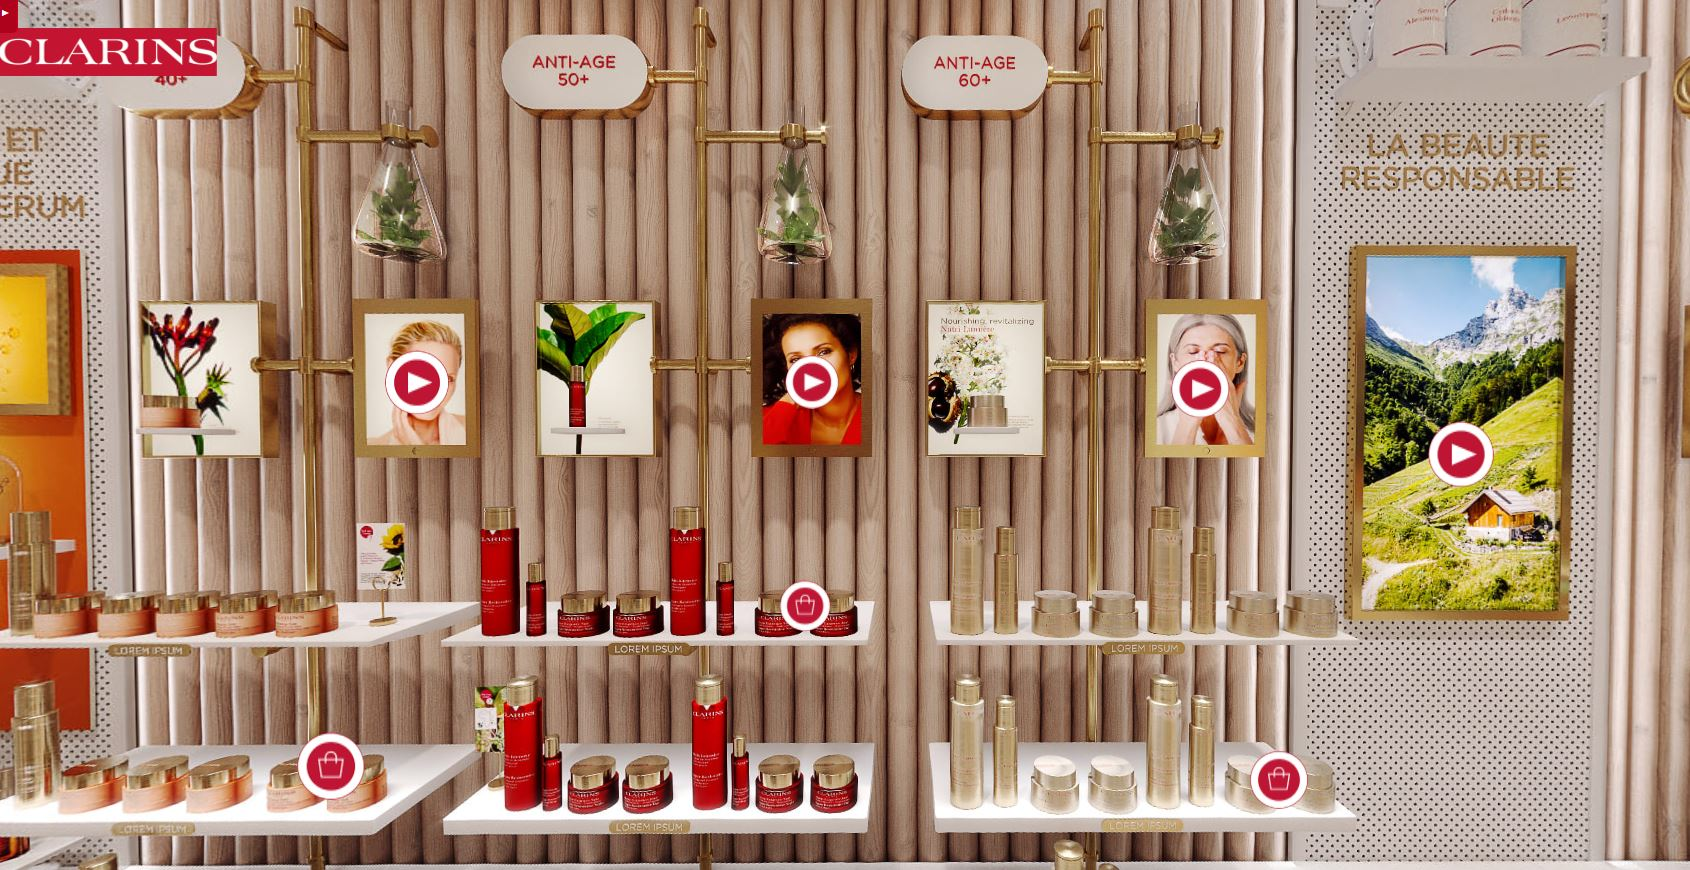 avis boutique virtuelle concept retail clarins